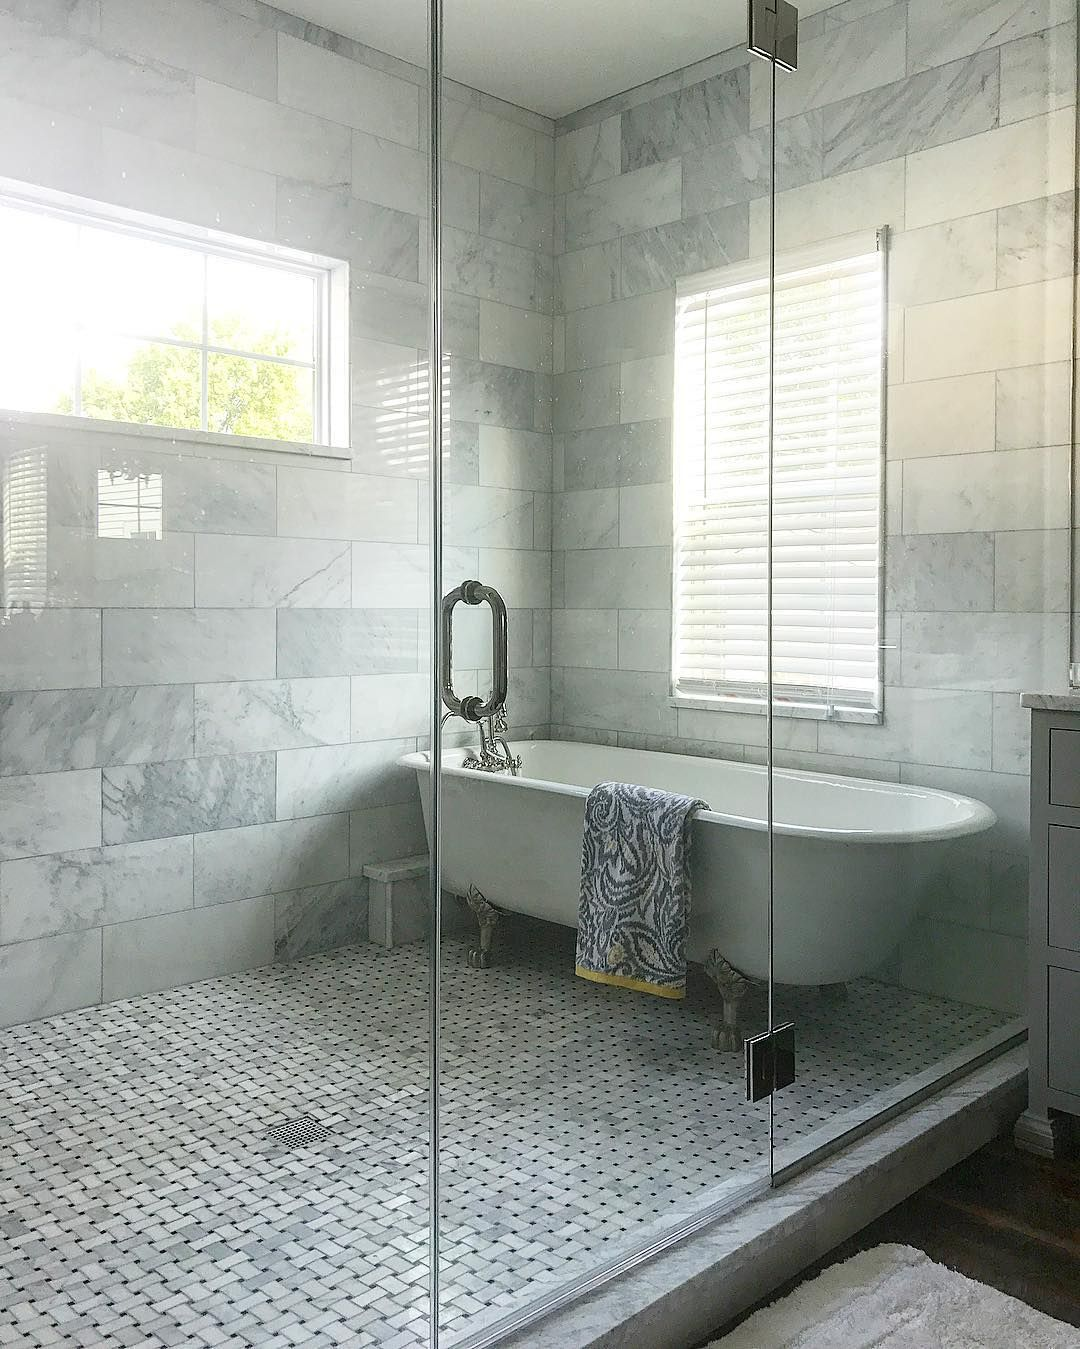 Ashley On Instagram There Was A Time That We Considered Finishing Our Master Bath With No Tub 1 I Was Told This Tub Was Too Far Gon Master Bath Tub Bath